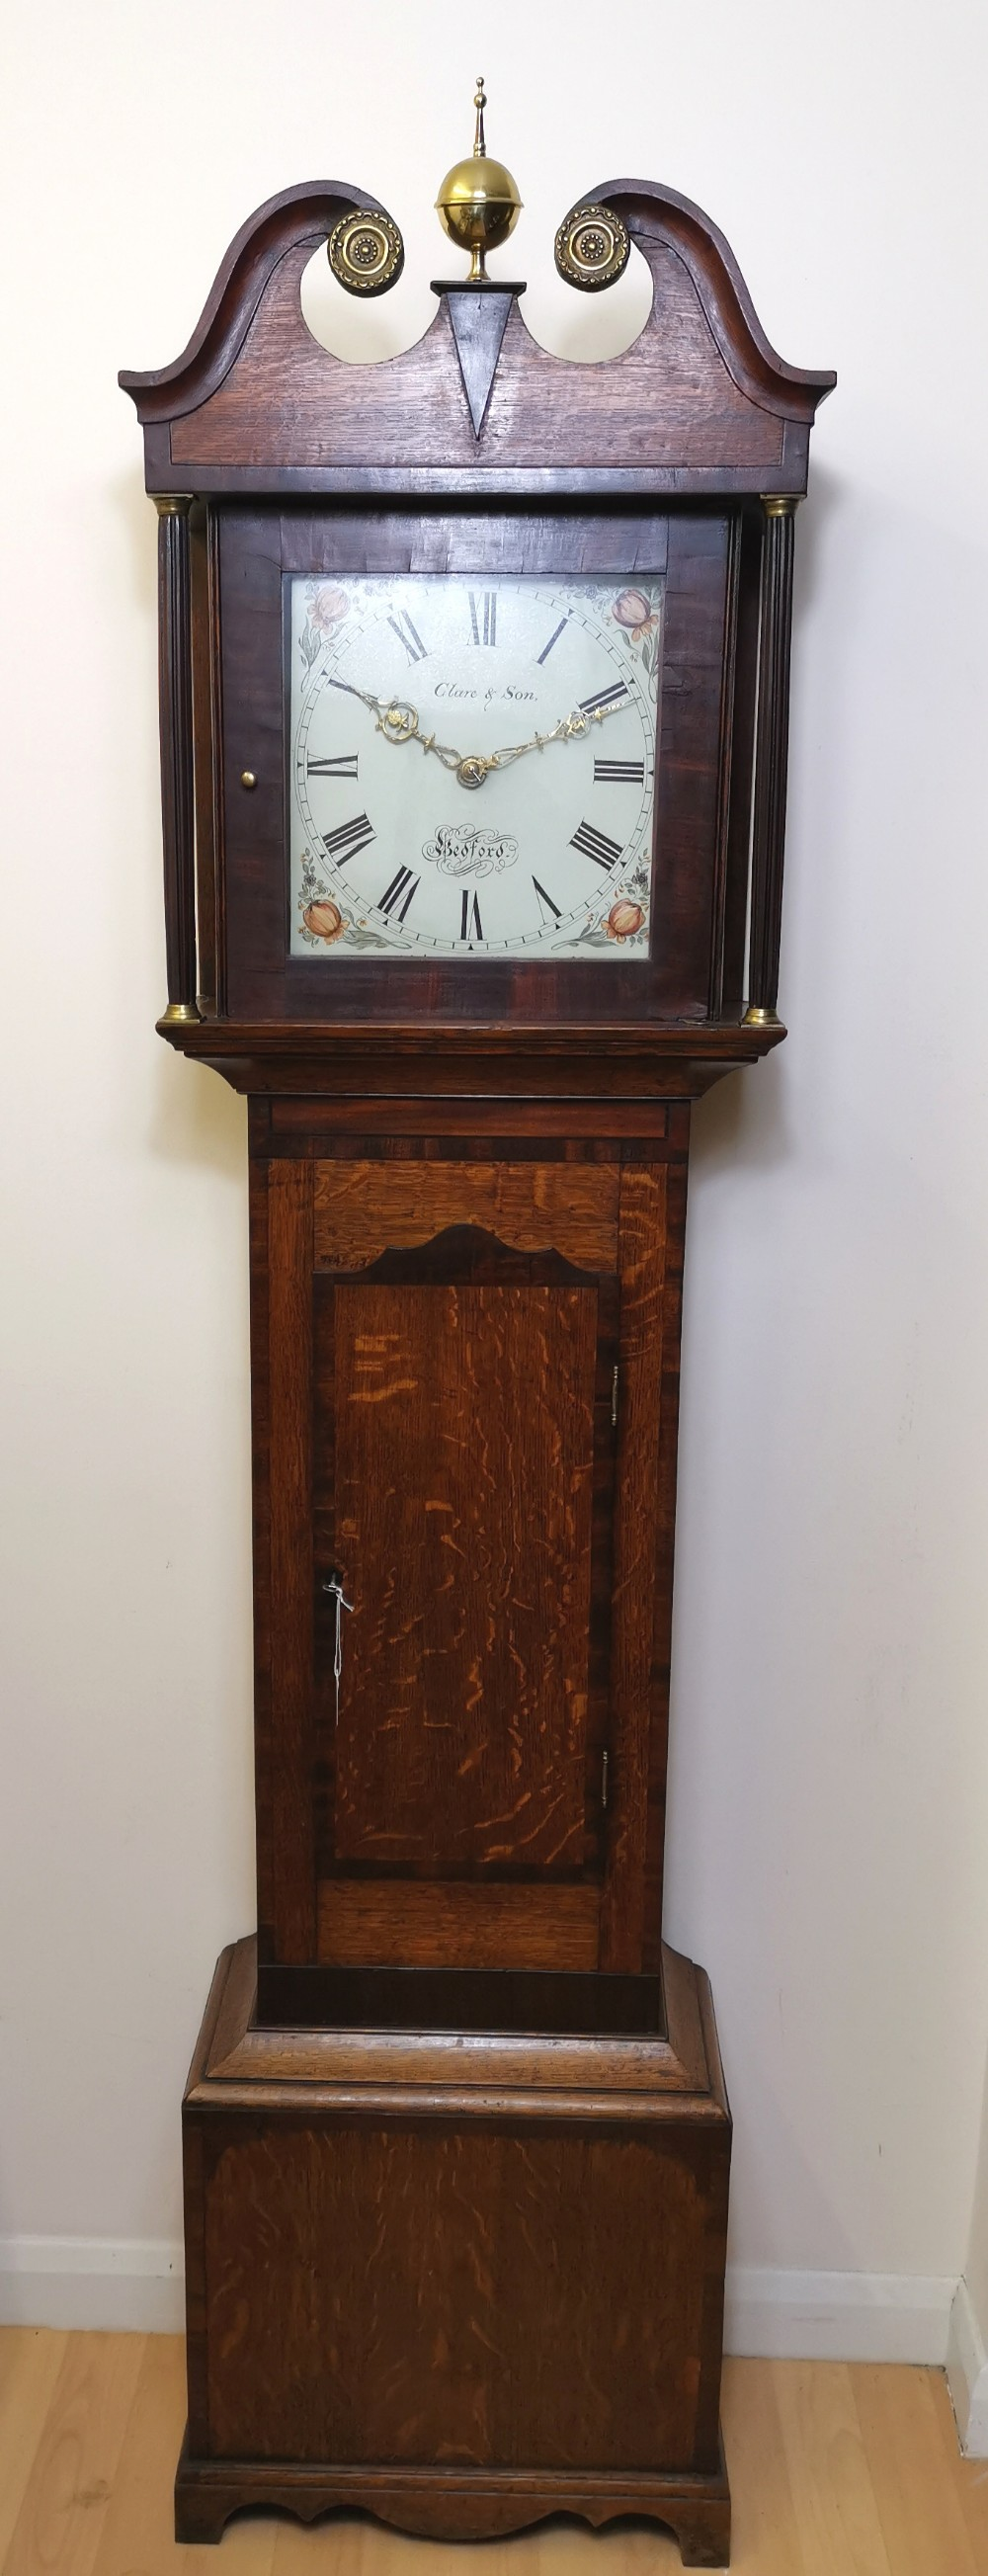 clare son bedford oak mahogany banded 19th century longcase renowned bedford clock making family